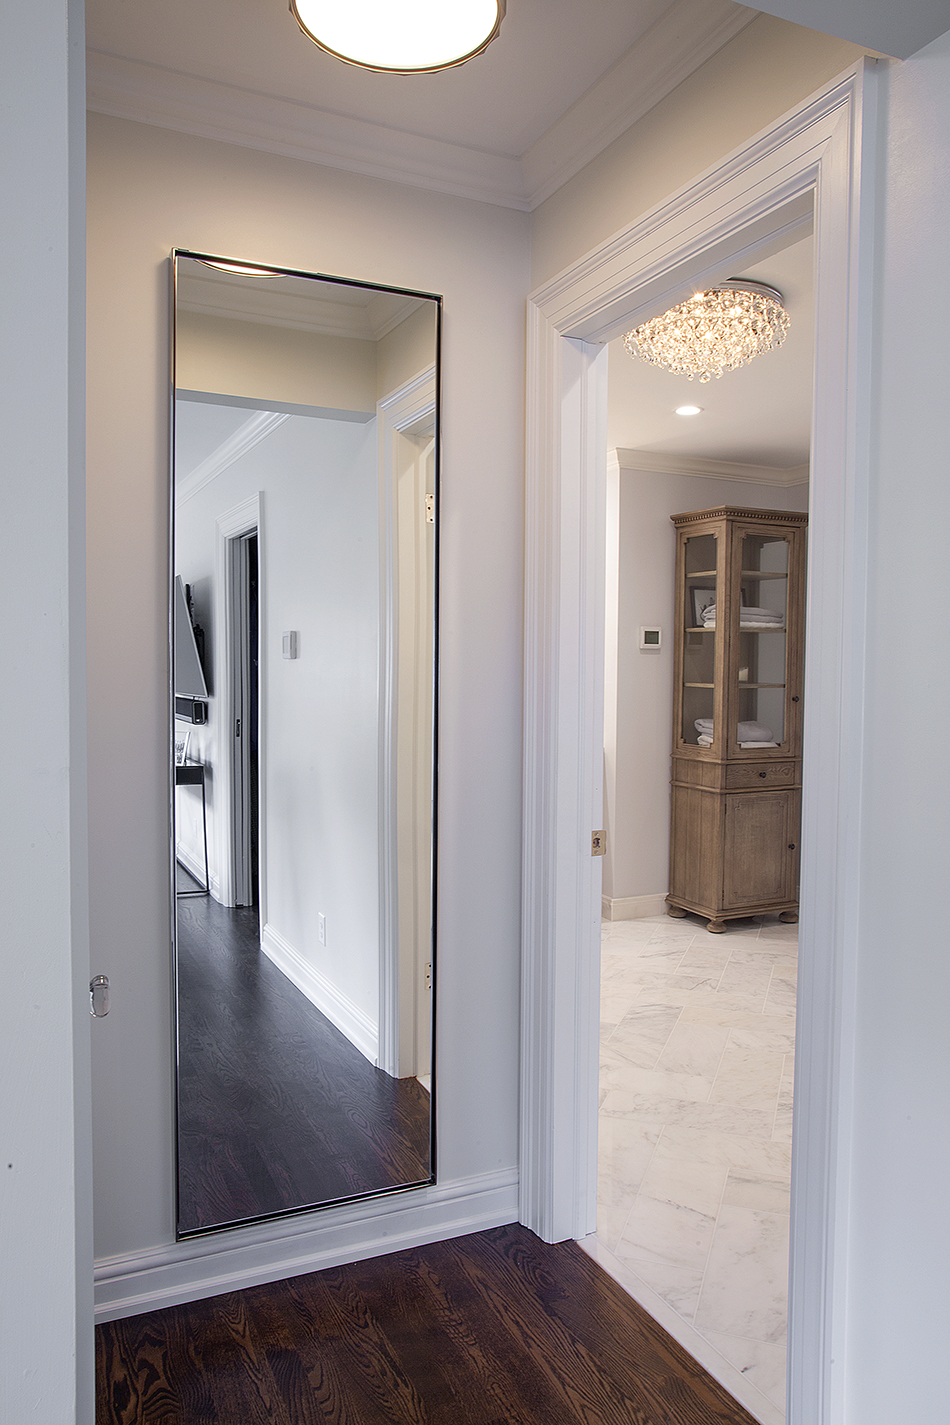 crown-molding-custom-hallway-mirror-wood-floor-whitefish-bay-wisconsin